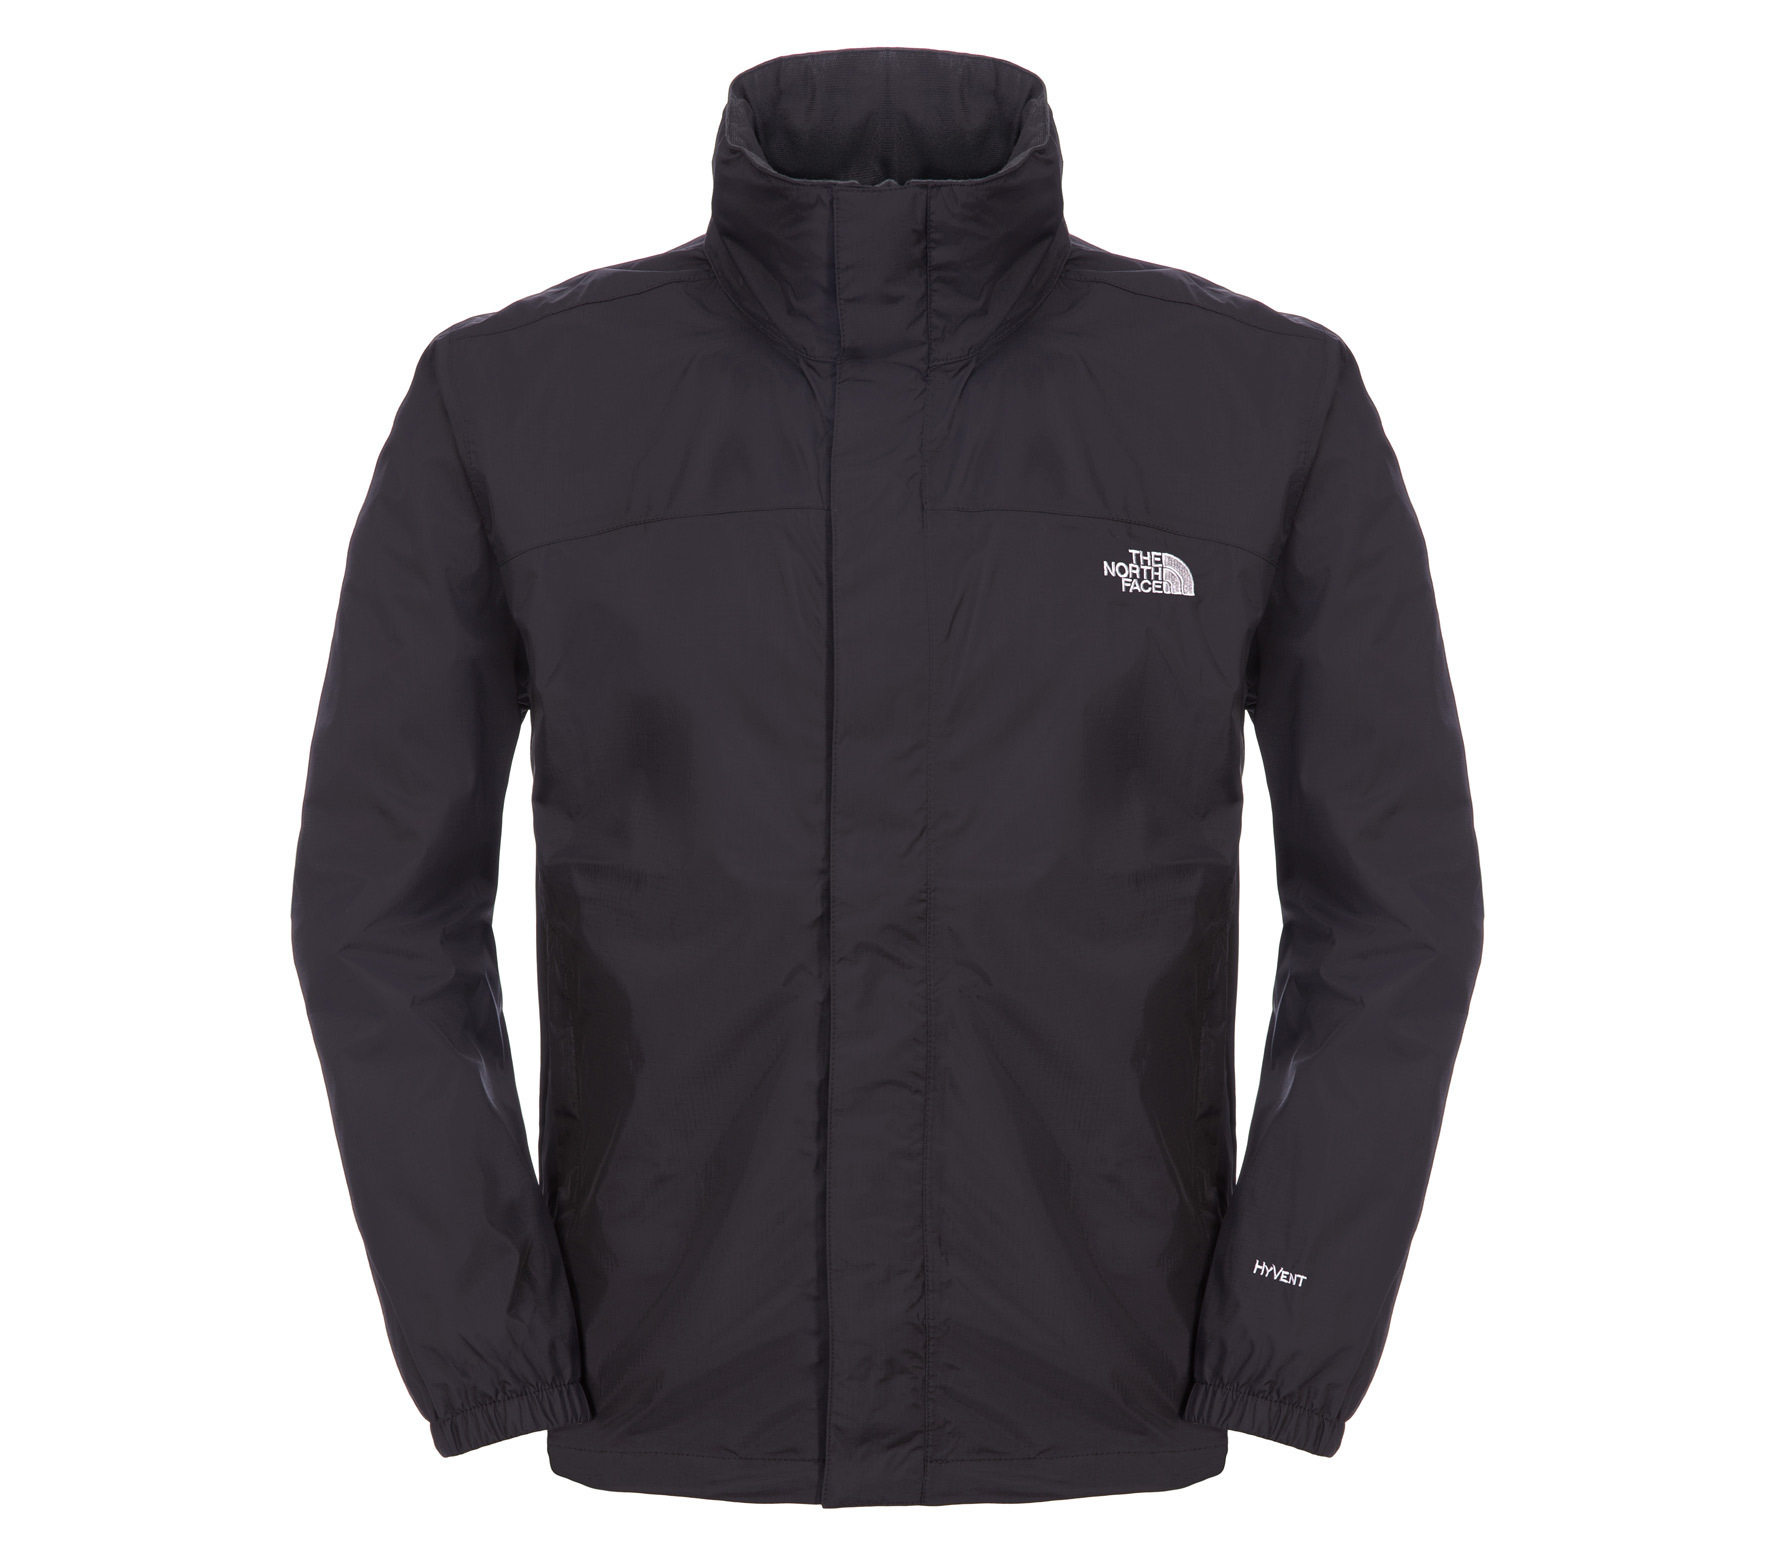 the north face resolve herren regenjacke schwarz outdoor outdoor cloth herren. Black Bedroom Furniture Sets. Home Design Ideas